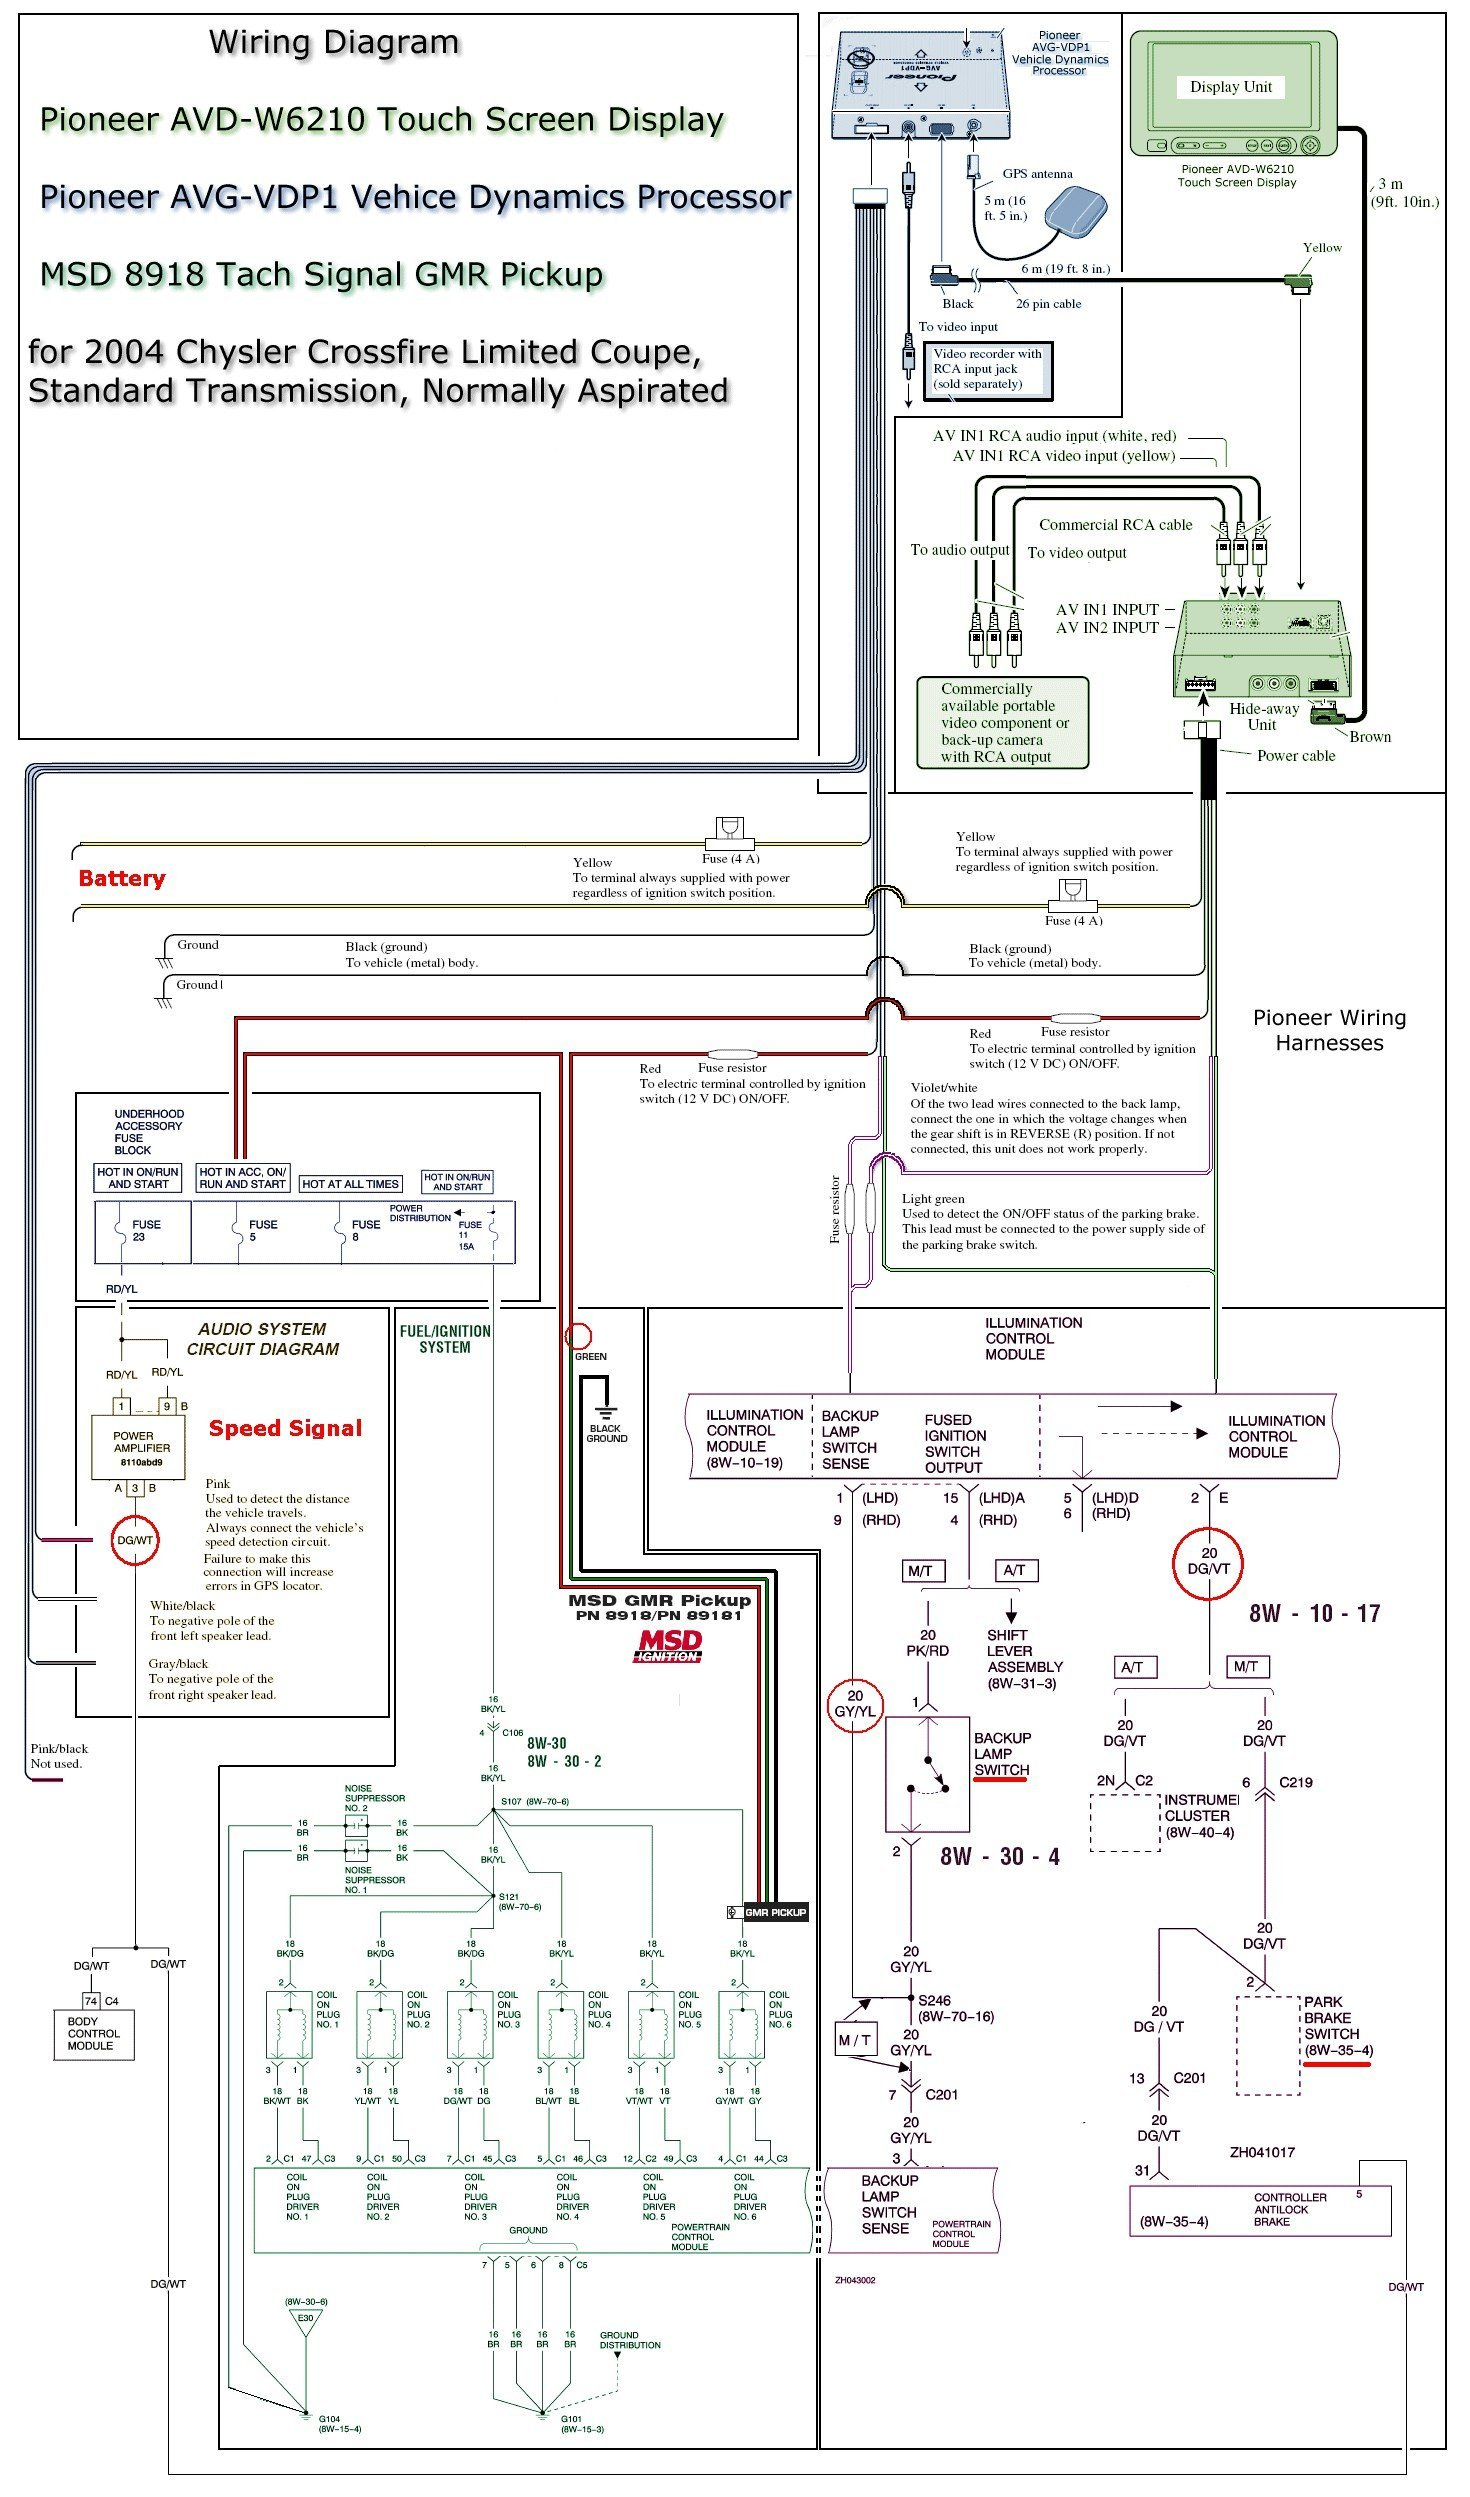 B S Wiring Diagram on cat5 diagram, mazda 6 throttle connection diagram, mazda tribute cruise control harness diagram, rj45 connector diagram, 12v diesel fuel schematics diagram, secondary ignition pickup sensor probe schematic diagram,